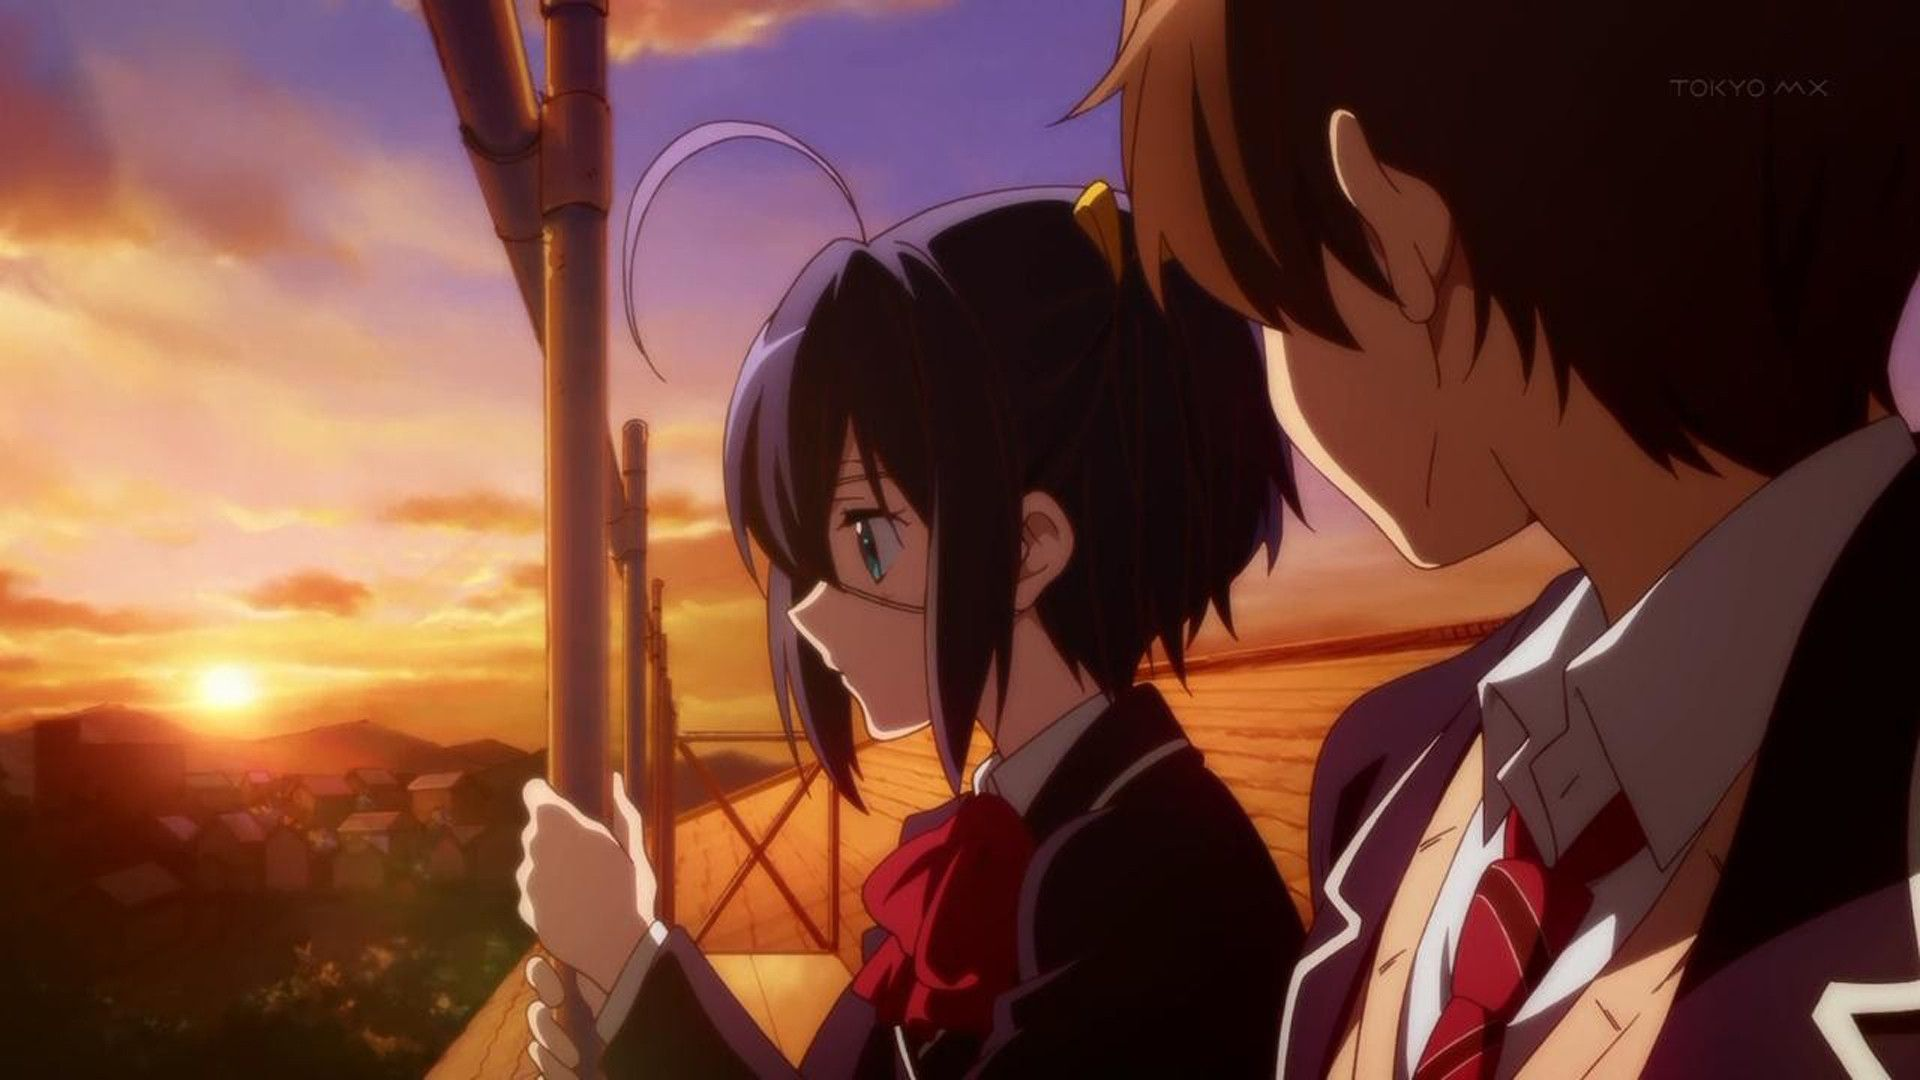 Love Chunibyo Other Delusions Computer Wallpapers Desktop Backgrounds 1920x1080 Id 655052 Anime Anime Romance Anime Love